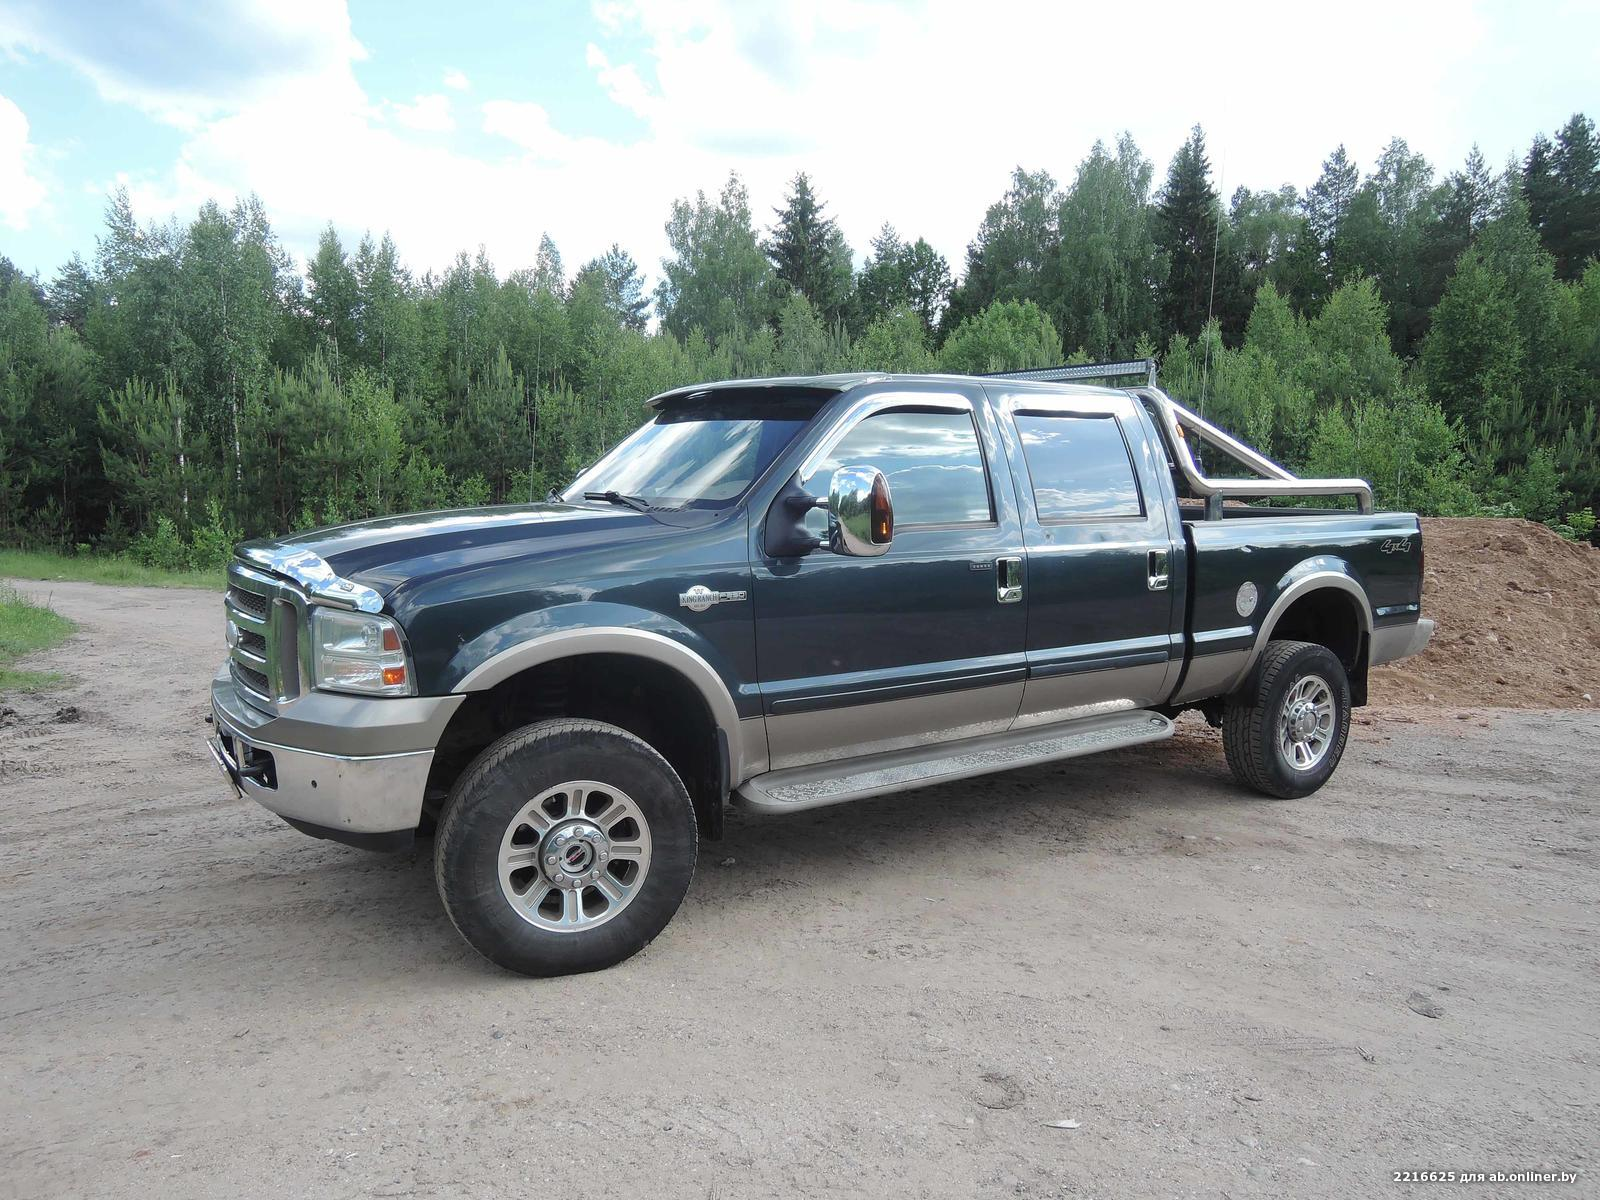 Ford F250 KING RANCH LARIAT SUPER DUTY